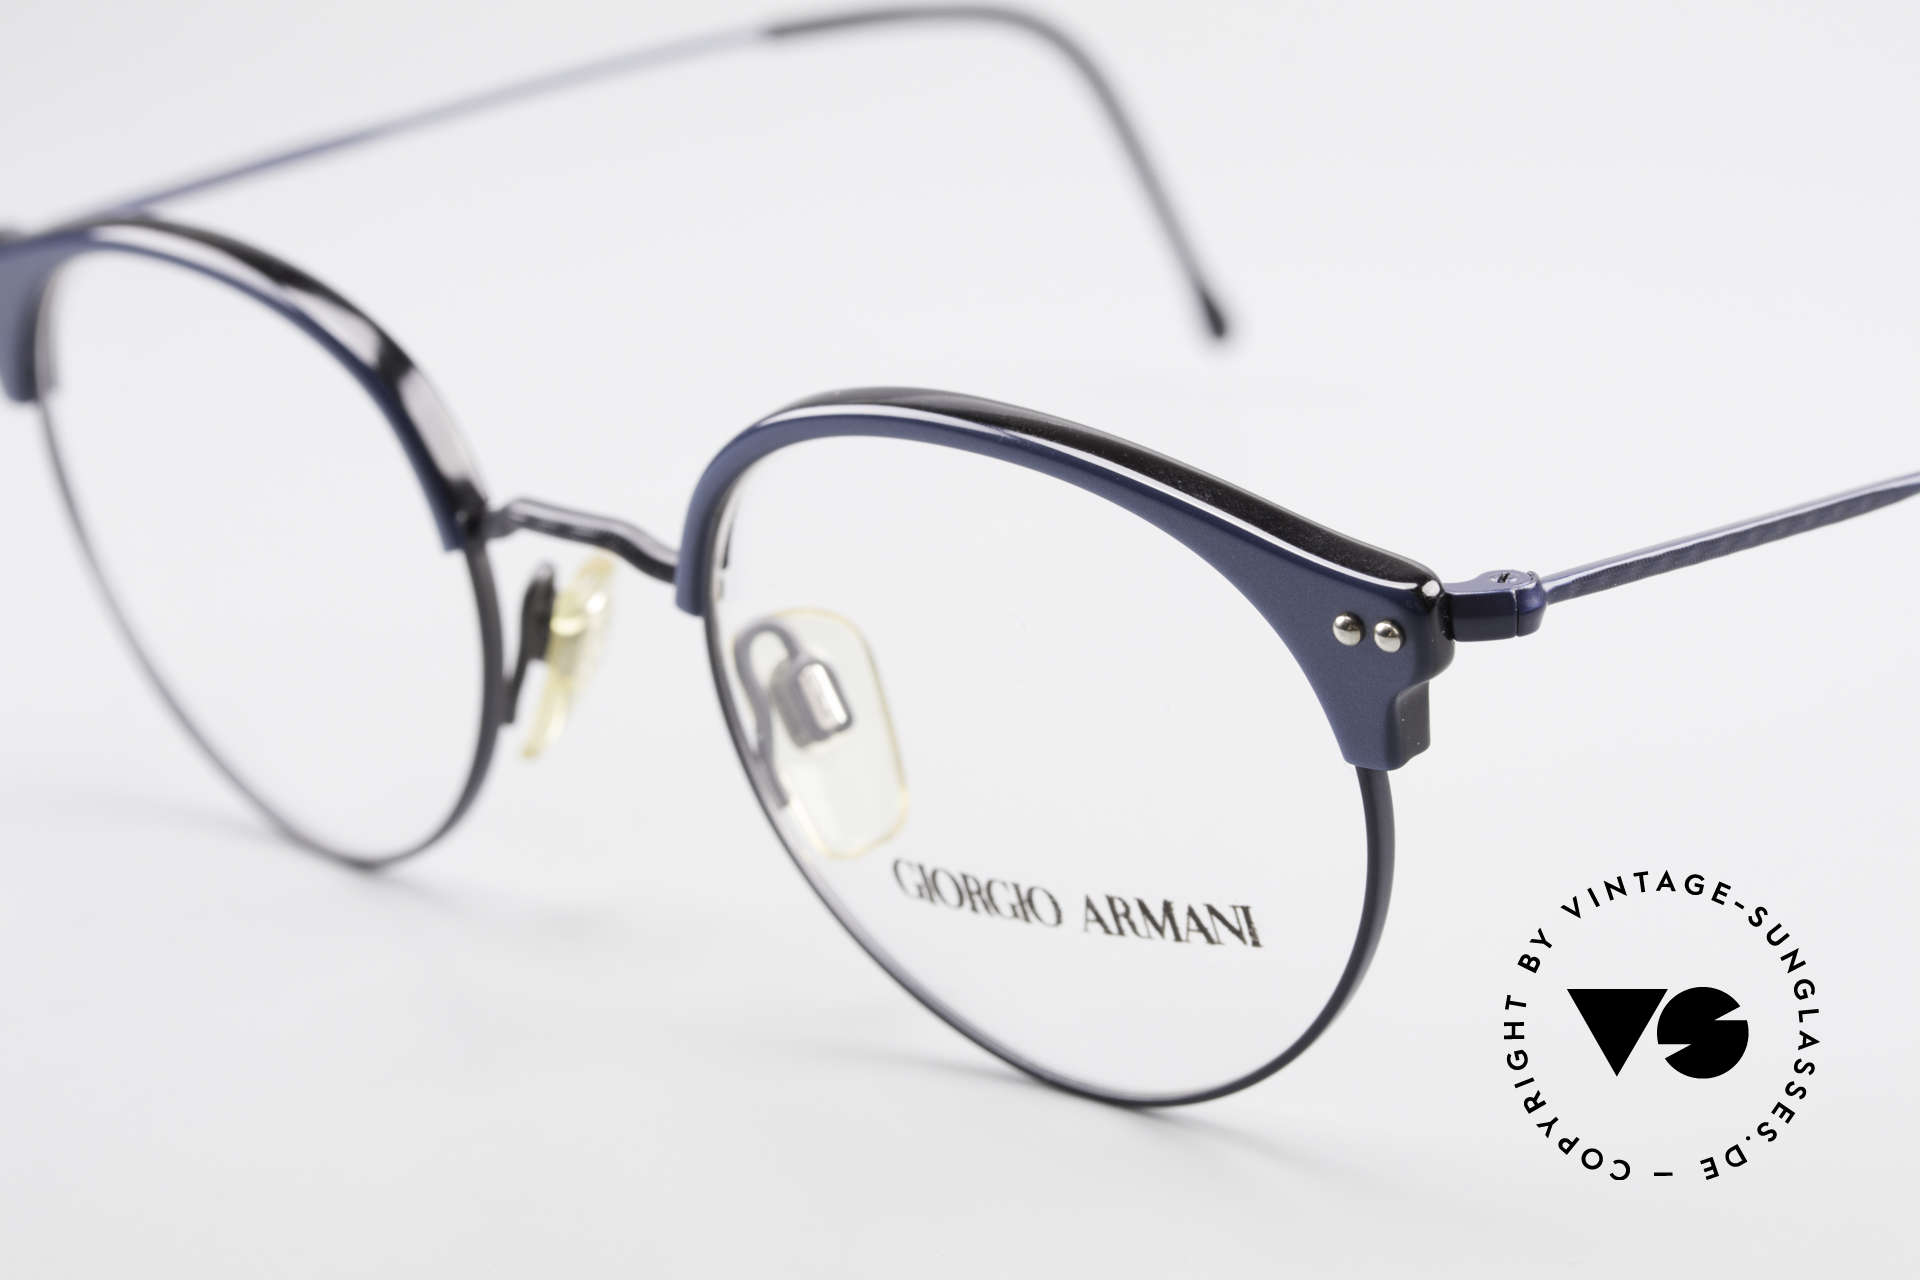 Giorgio Armani 377 90's Panto Style Eyeglasses, unworn (like all our vintage Giorgio Armani eyewear), Made for Men and Women